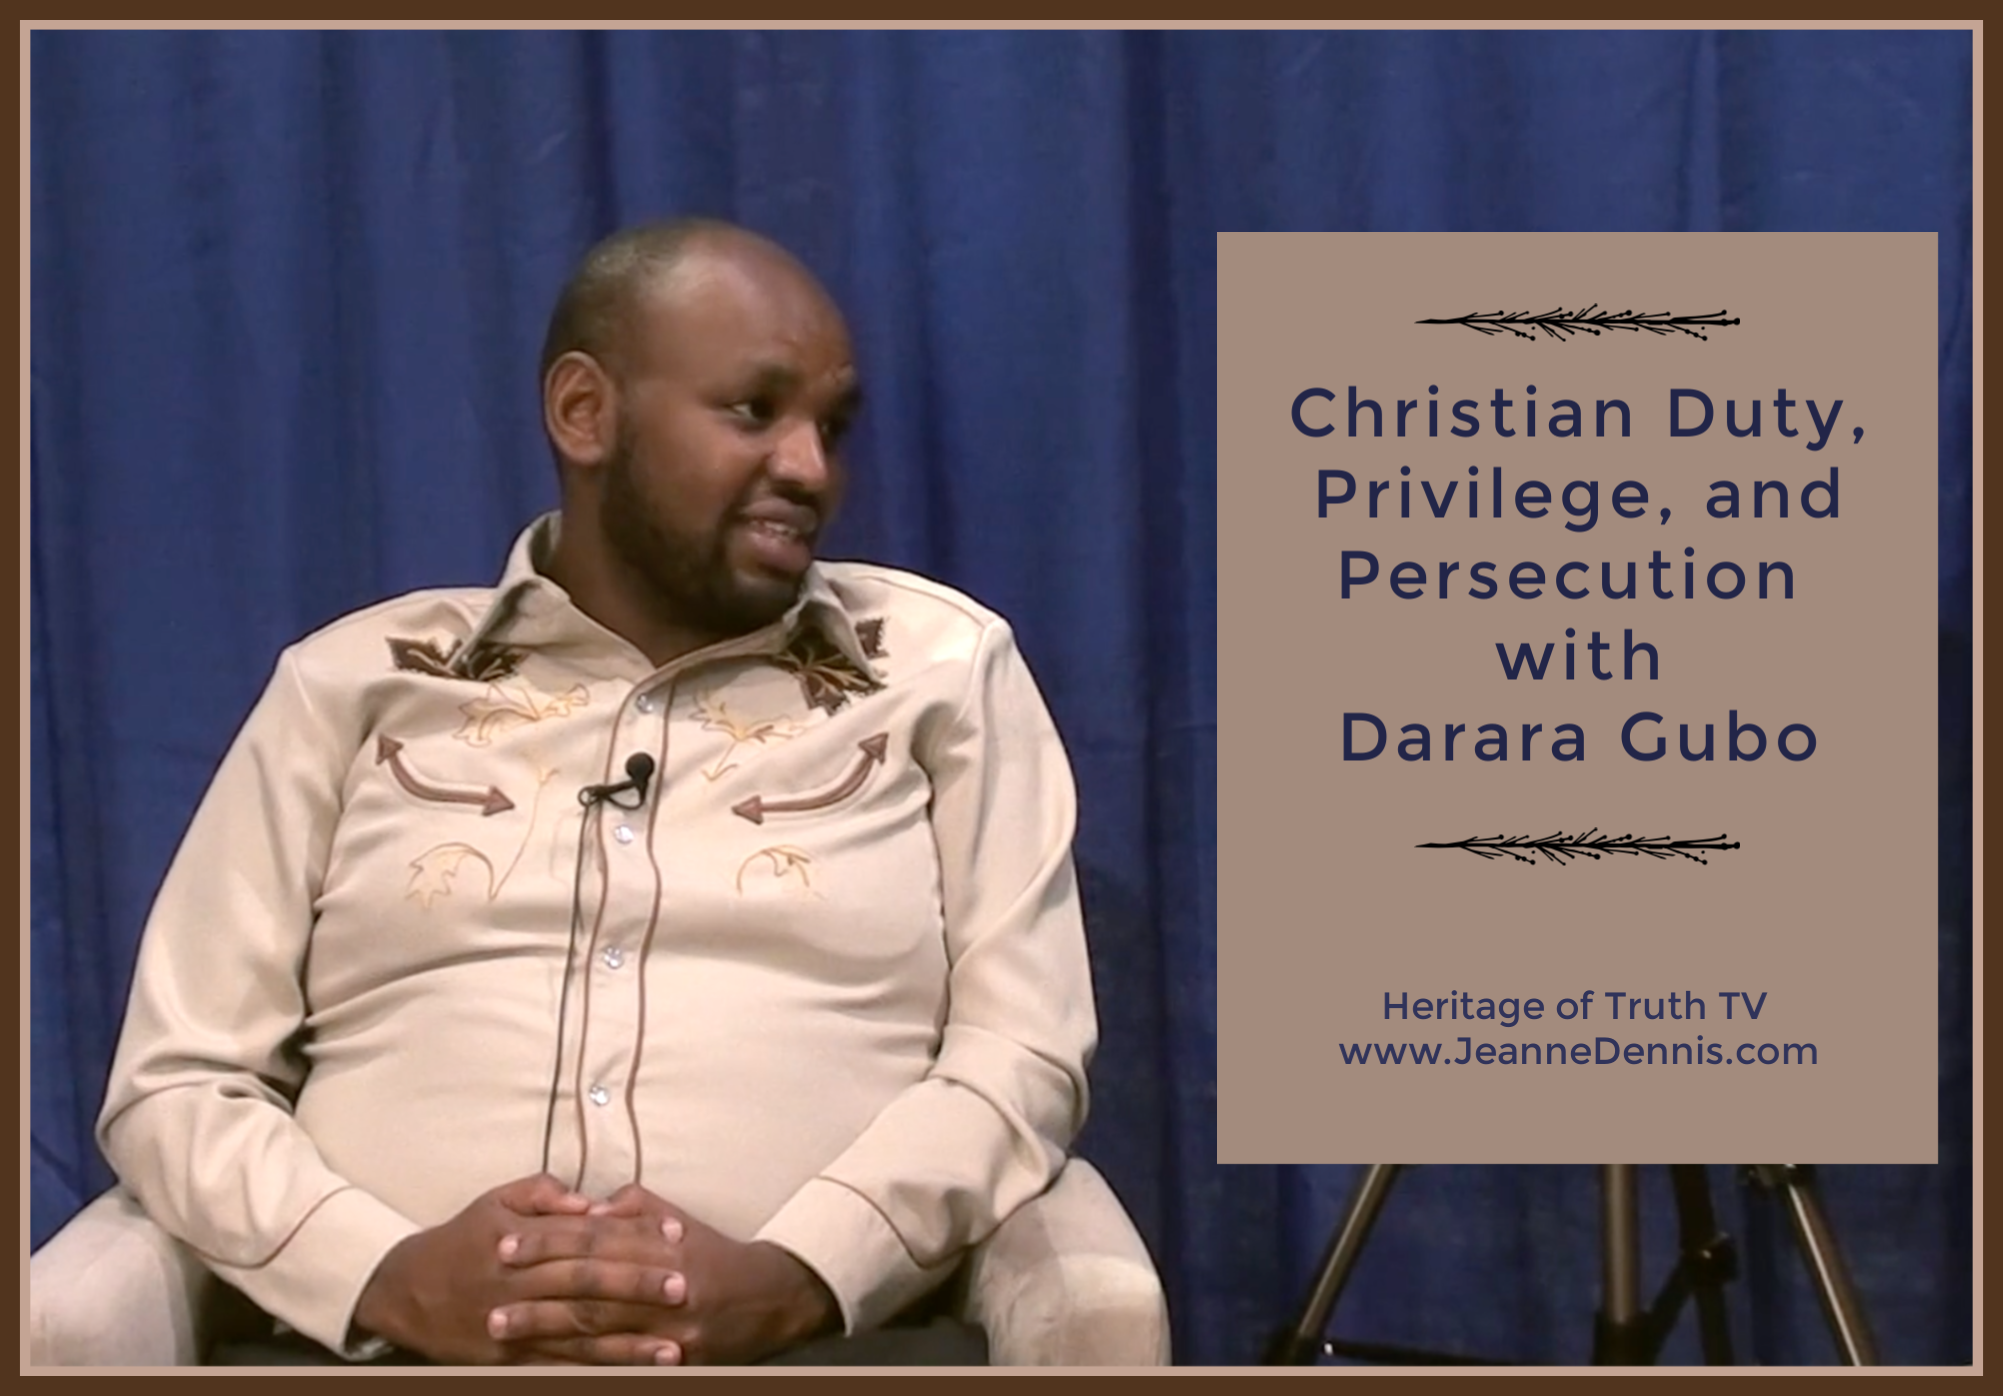 Christian Duty, privilege and persecution Darara Gubo